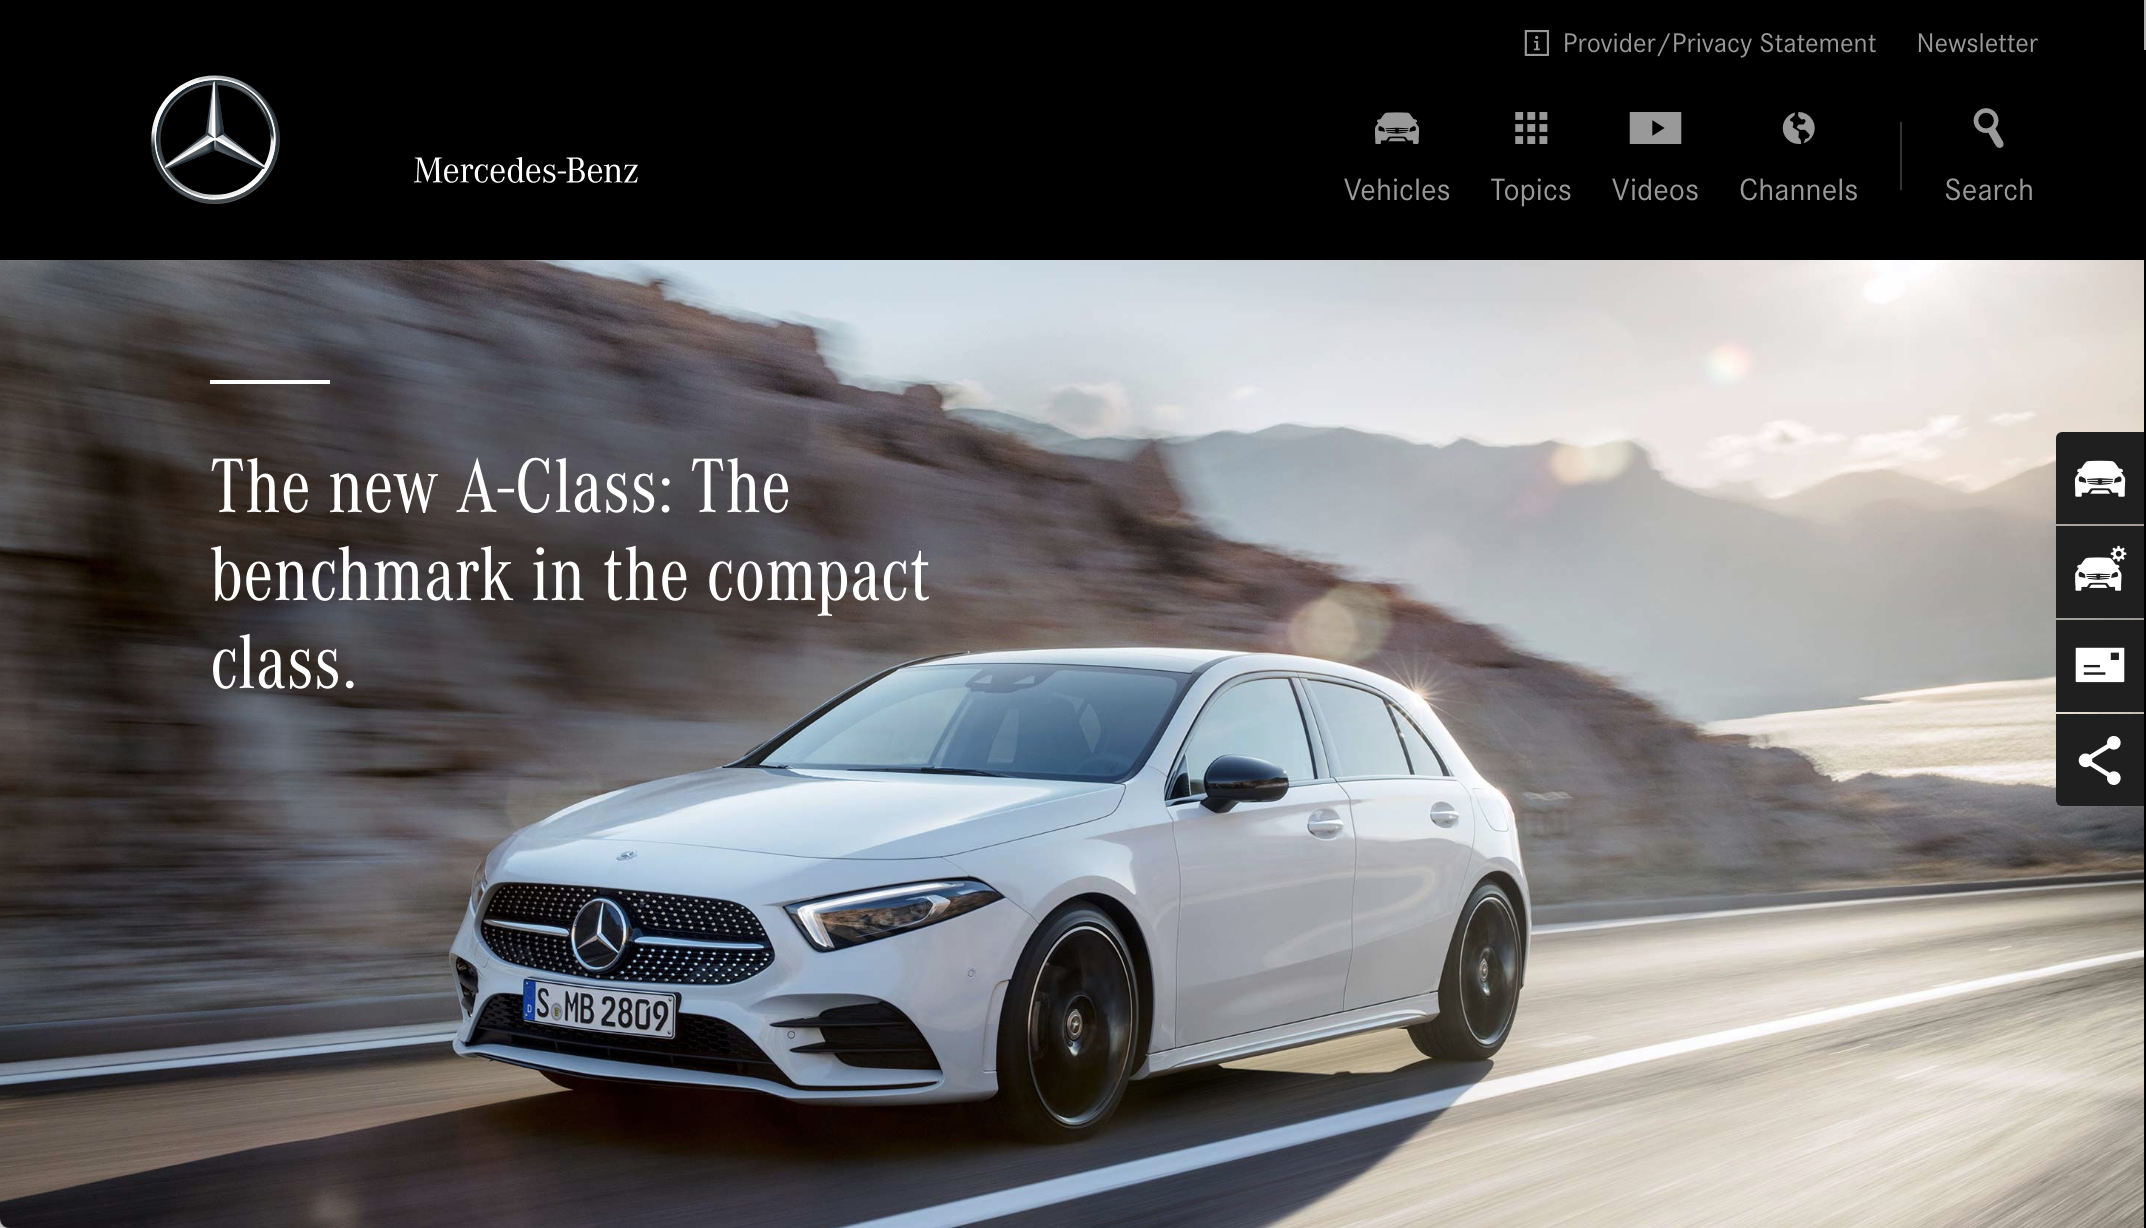 We were looking to capture the spirit of Mercedes' own corporate look and feel with our design (like the A-Class website seen here), something the existing MBUX doesn't do effectively